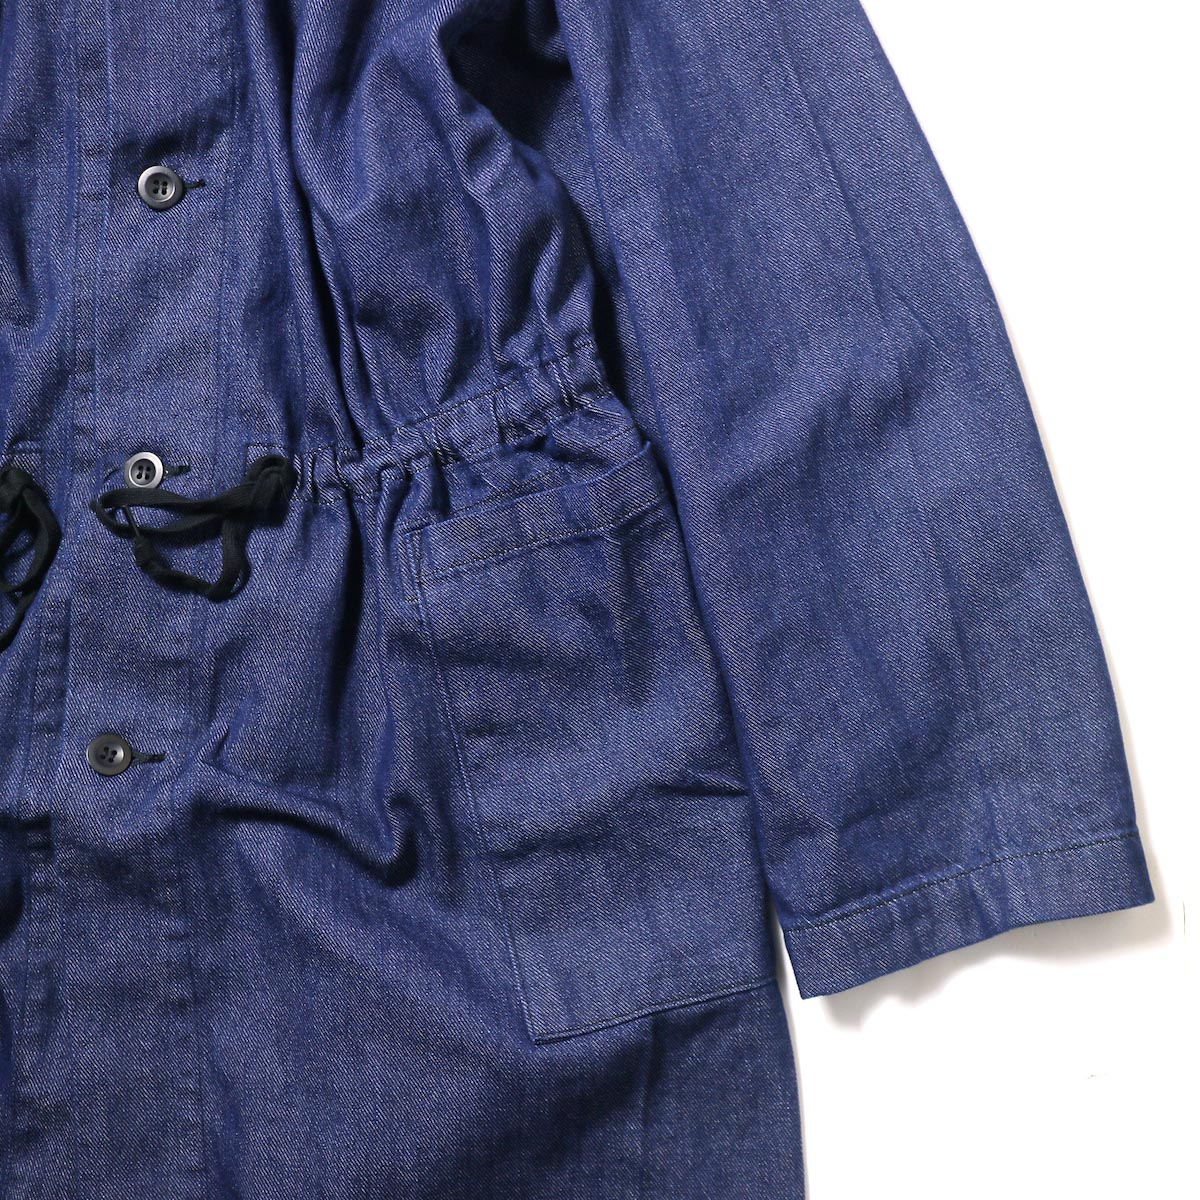 orSlow / No Collar Coat (One Wash)ウエスト、袖